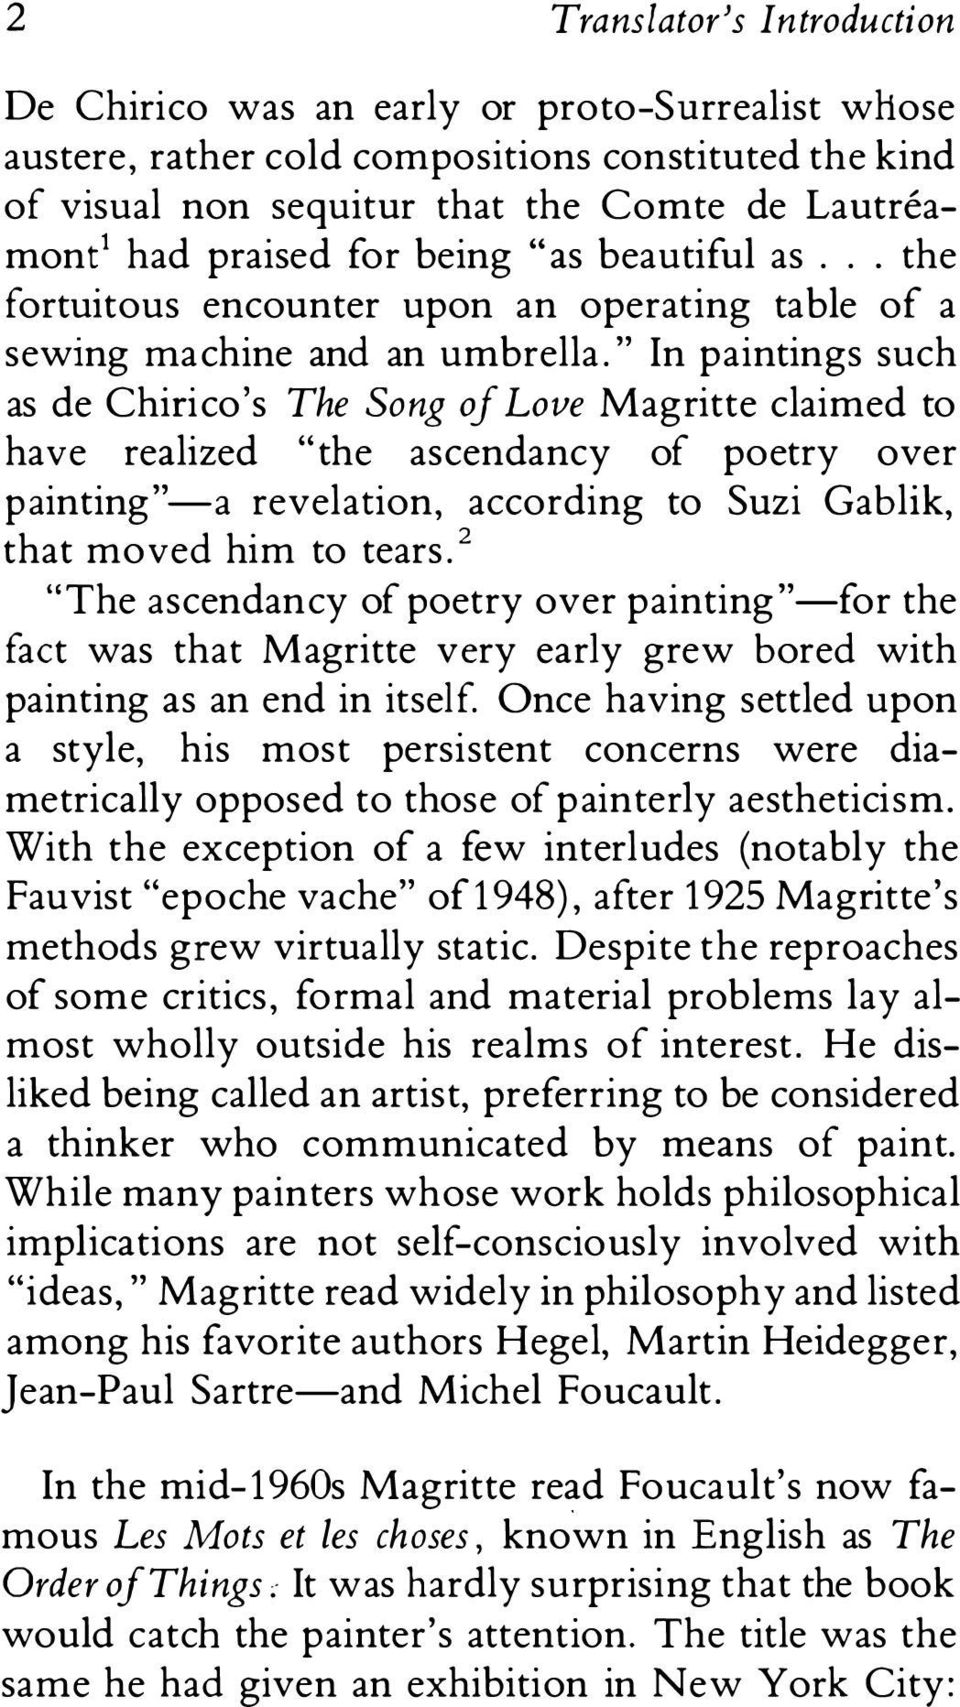 """ In paintings such as de Chirico's The Song oj Love Magritte claimed to have realized ""the ascendancy of poetry over painting""-a revelation, according to Suzi Gablik, that moved him to tears."